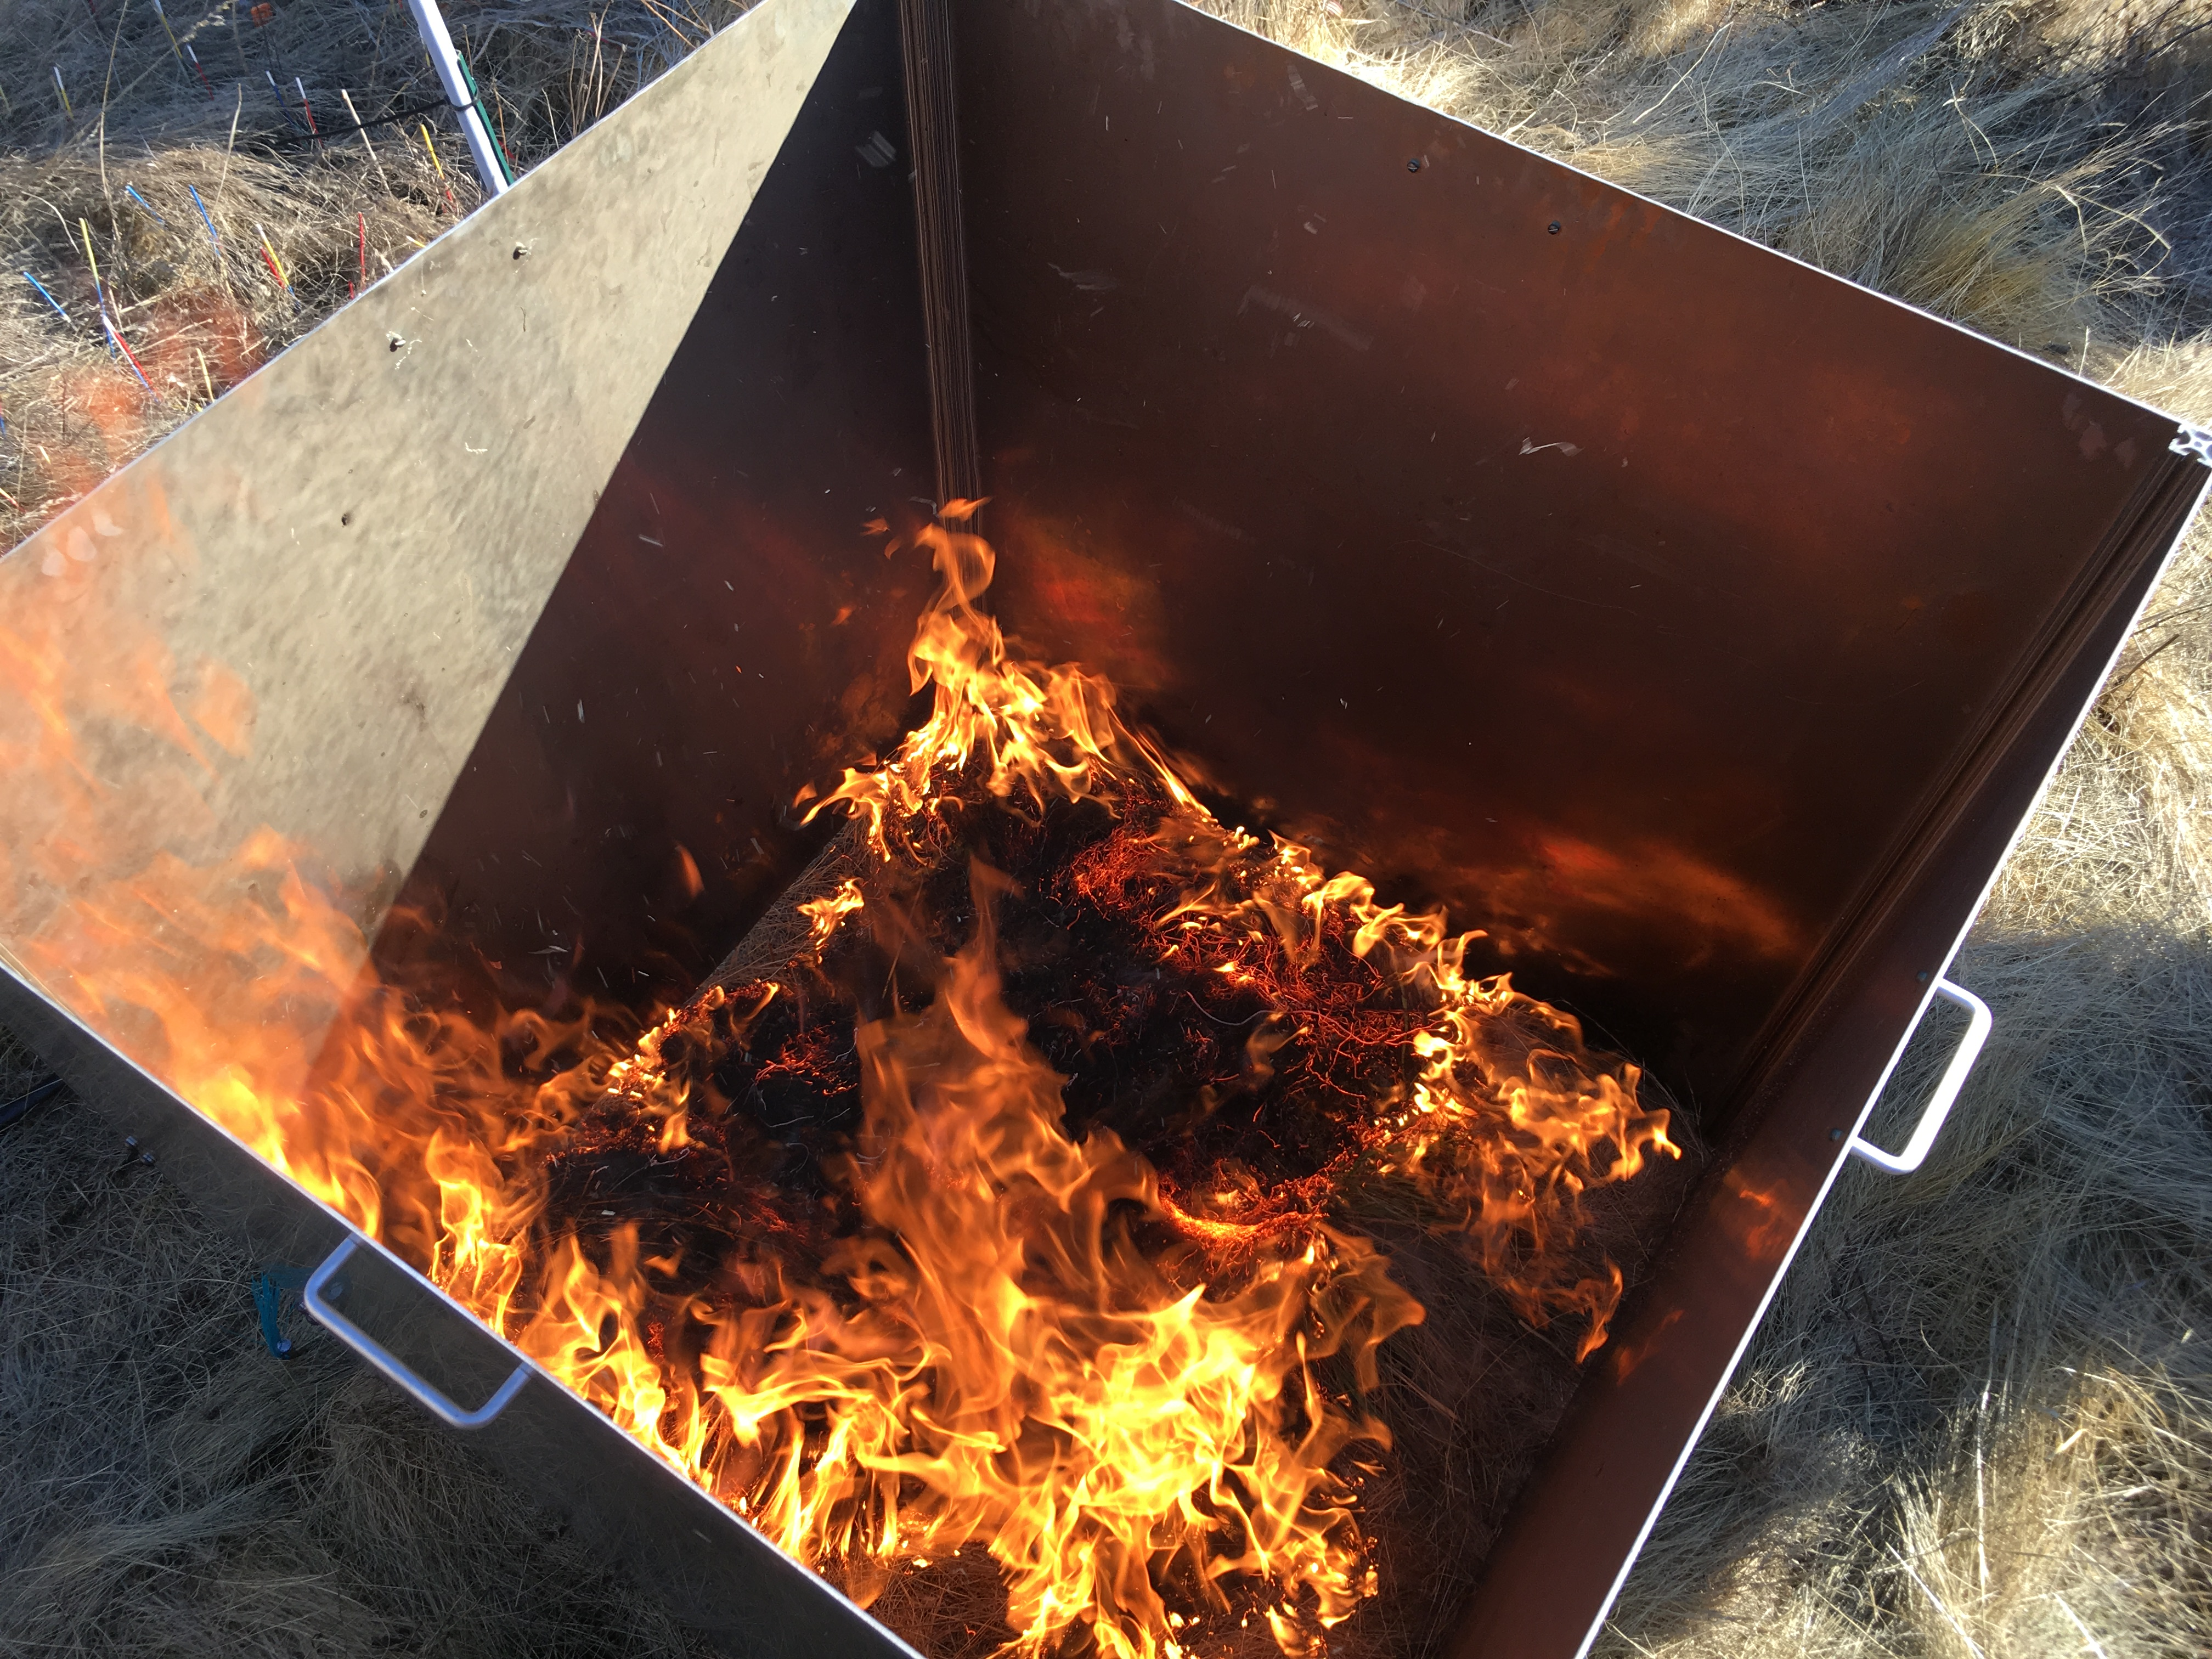 Alejandro's burn box in use for replicated, safe burns